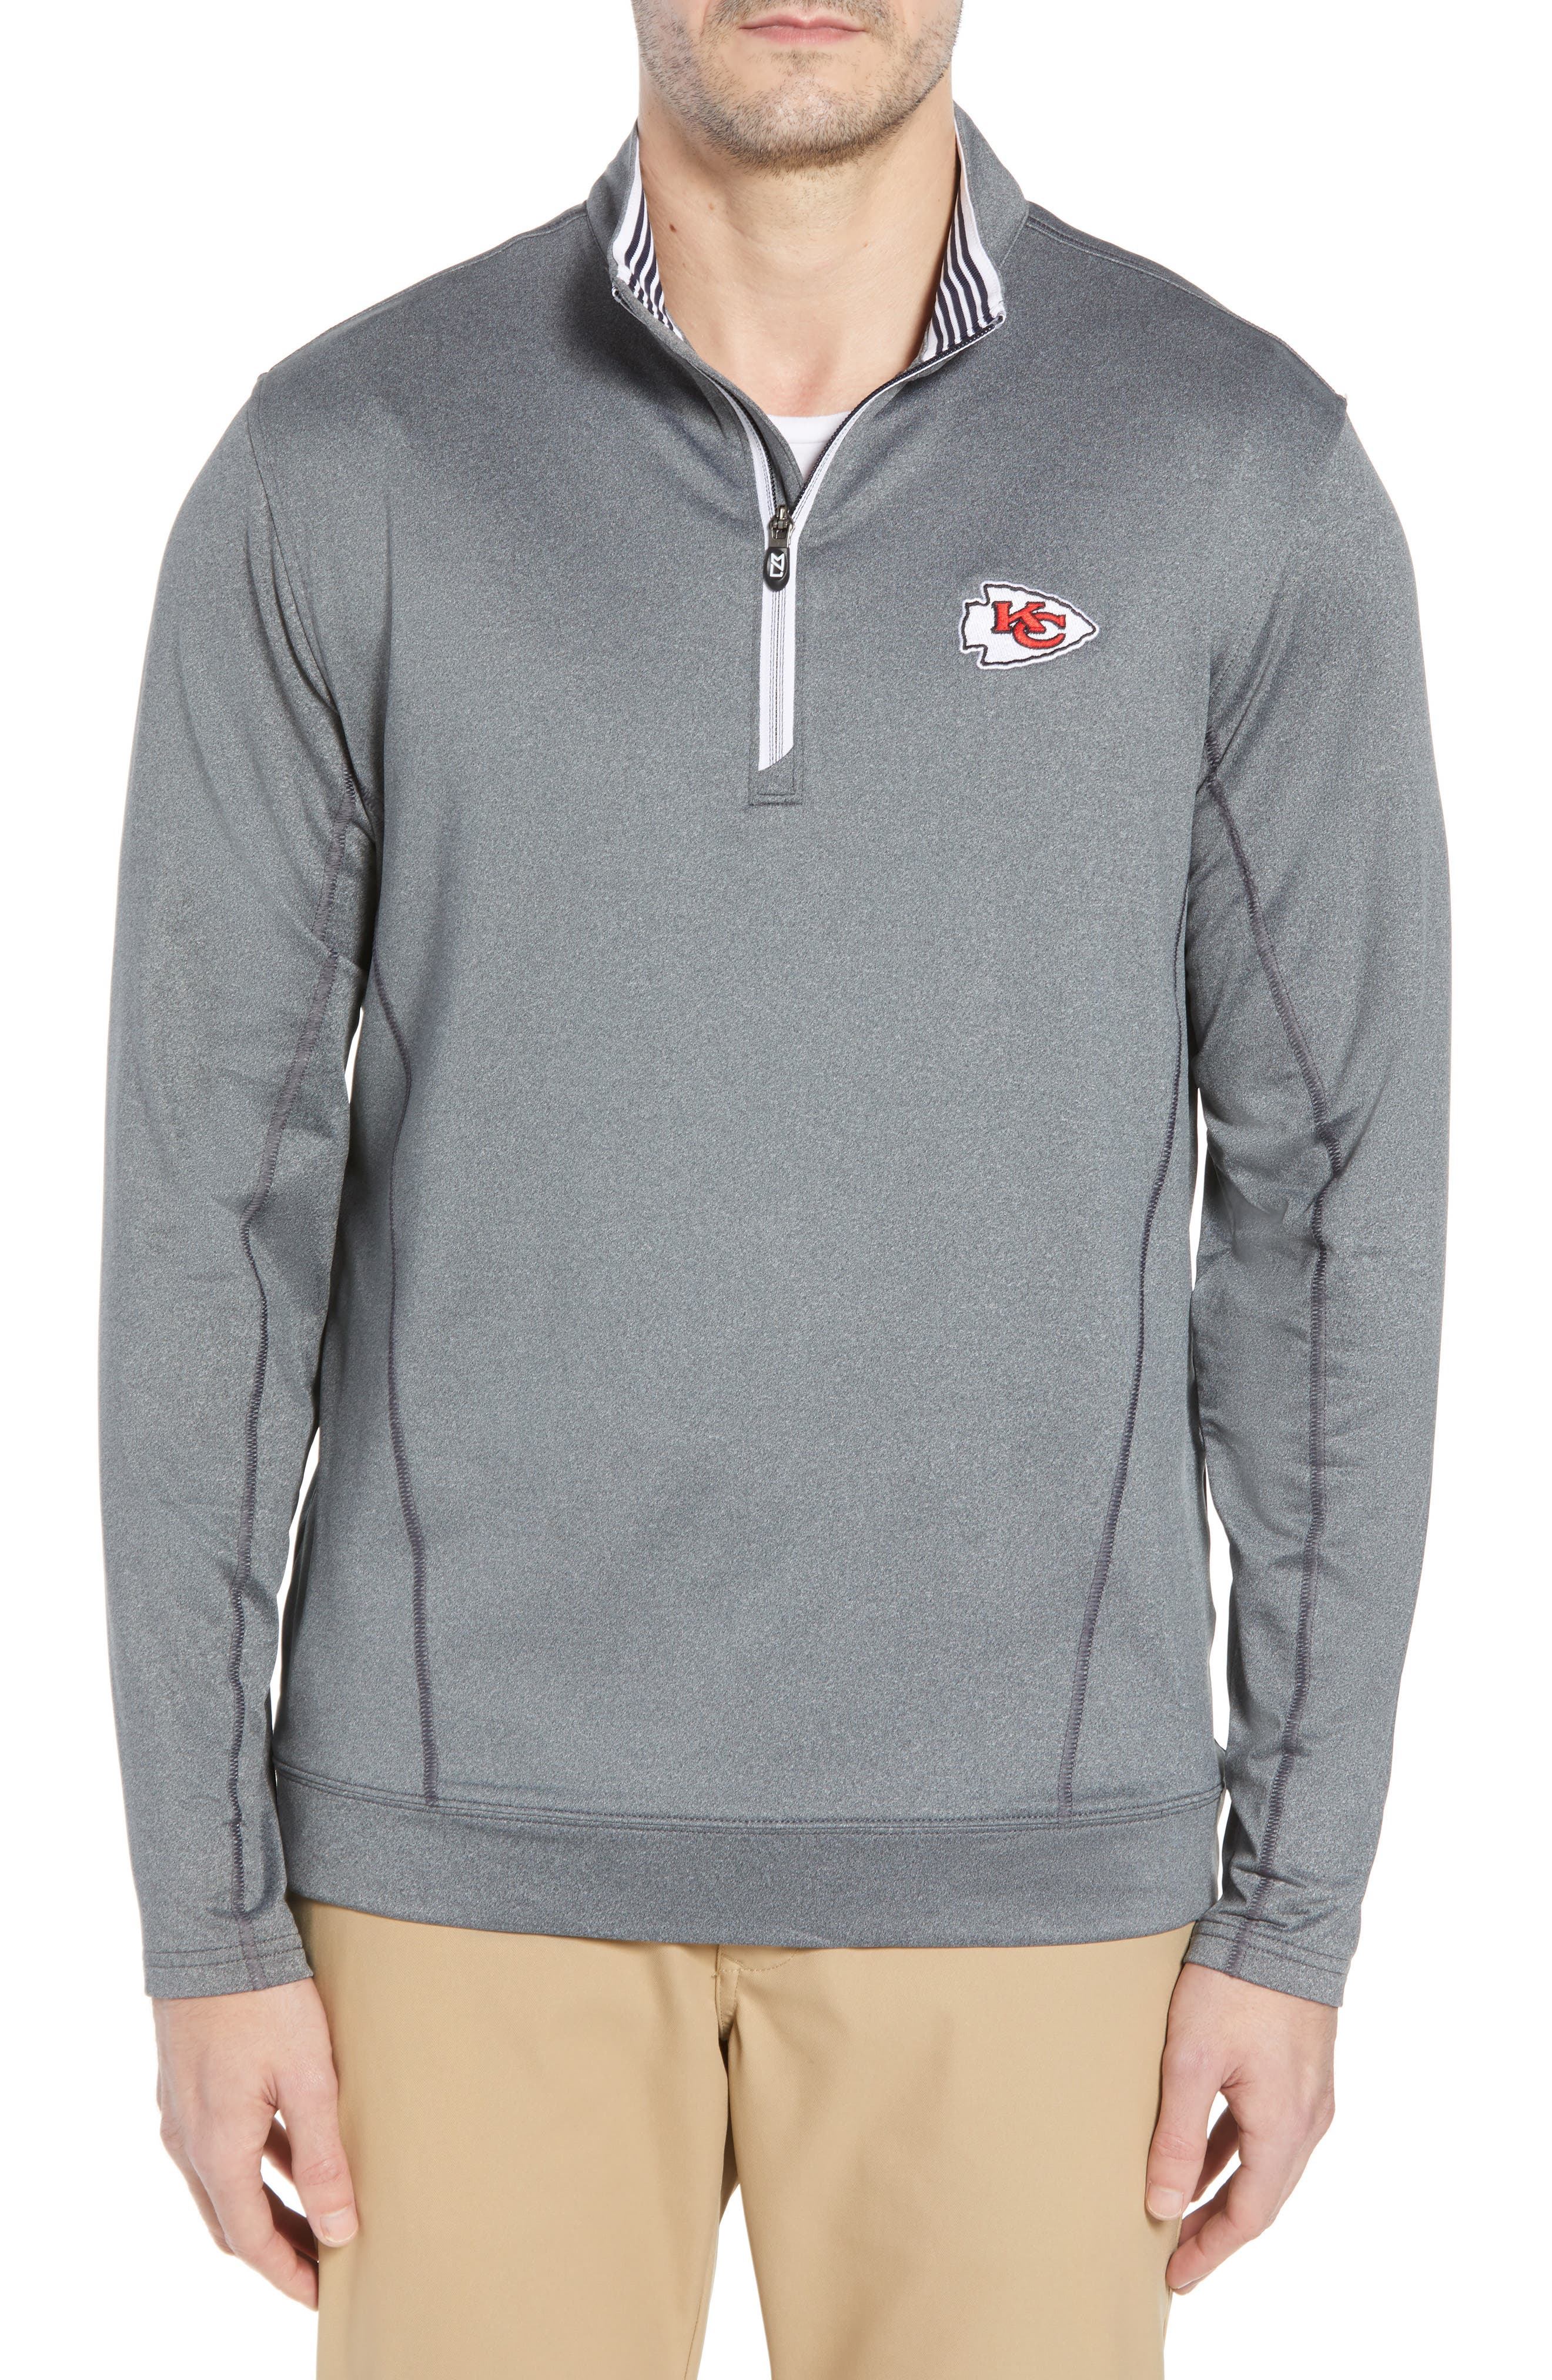 Endurance Kansas City Chiefs Regular Fit Pullover,                         Main,                         color, CHARCOAL HEATHER